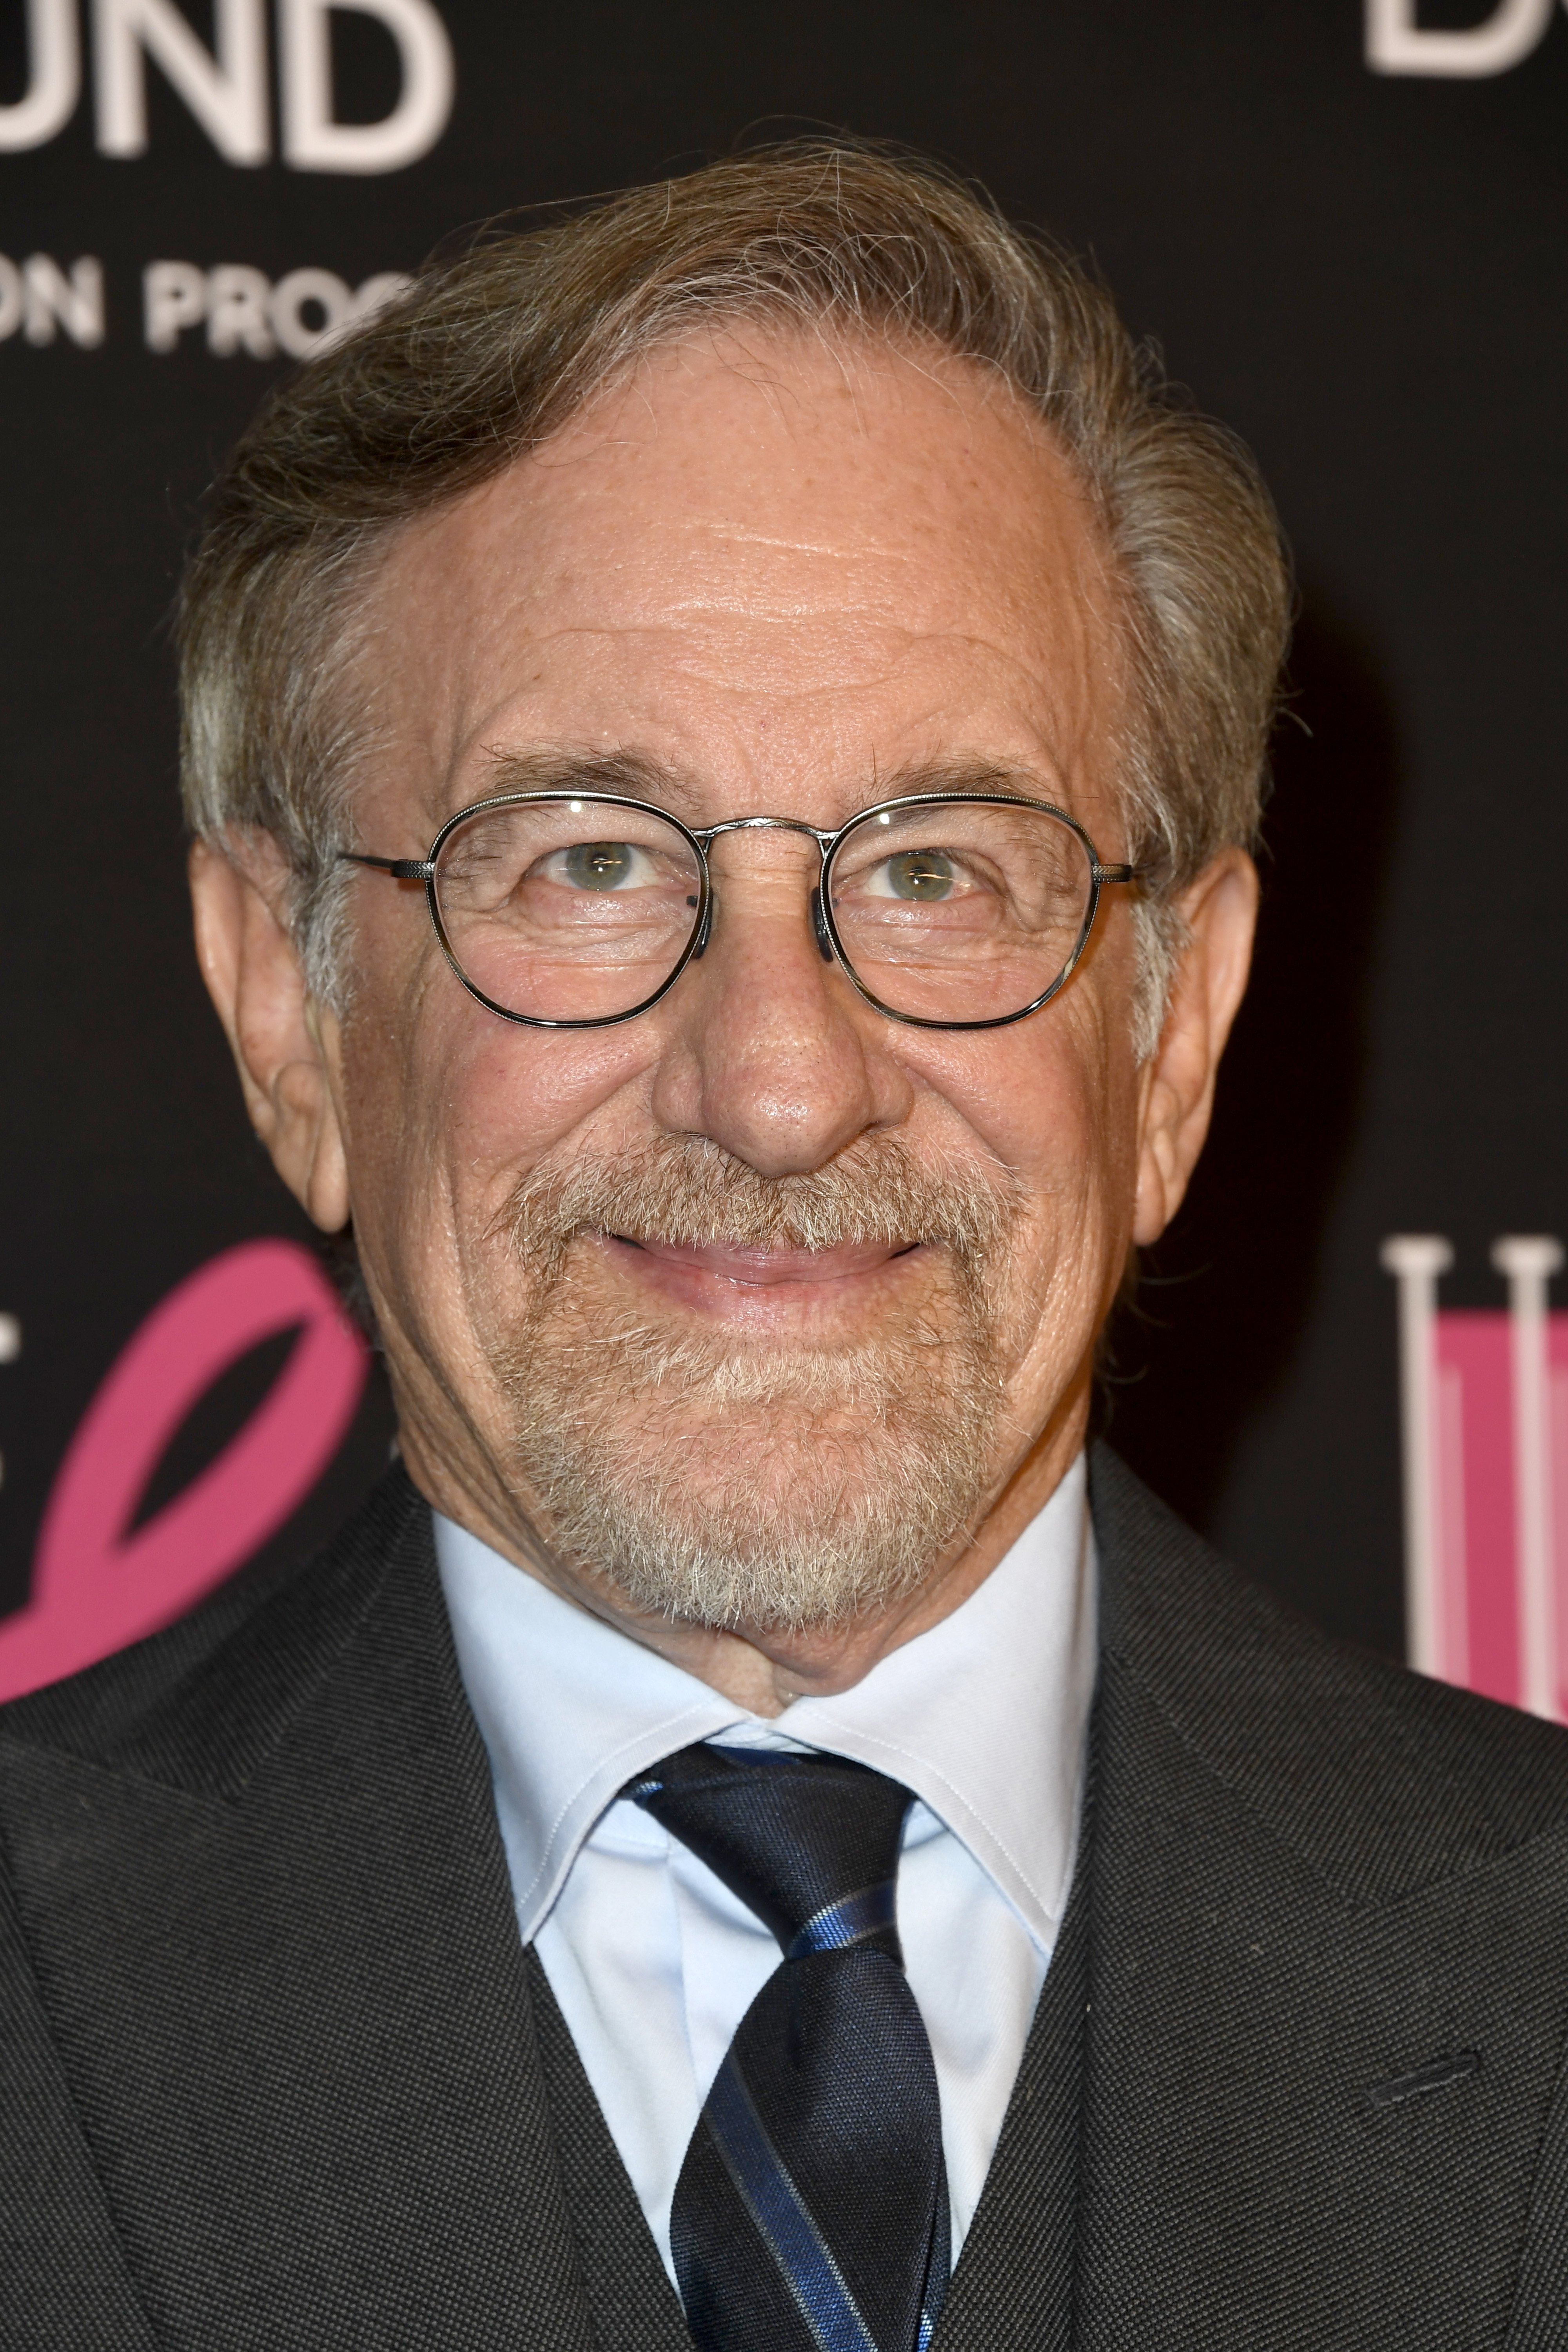 Steven Spielberg attends The Women's Cancer Research Fund's Benefit Gala on February 28, 2019 | Photo: GettyImage